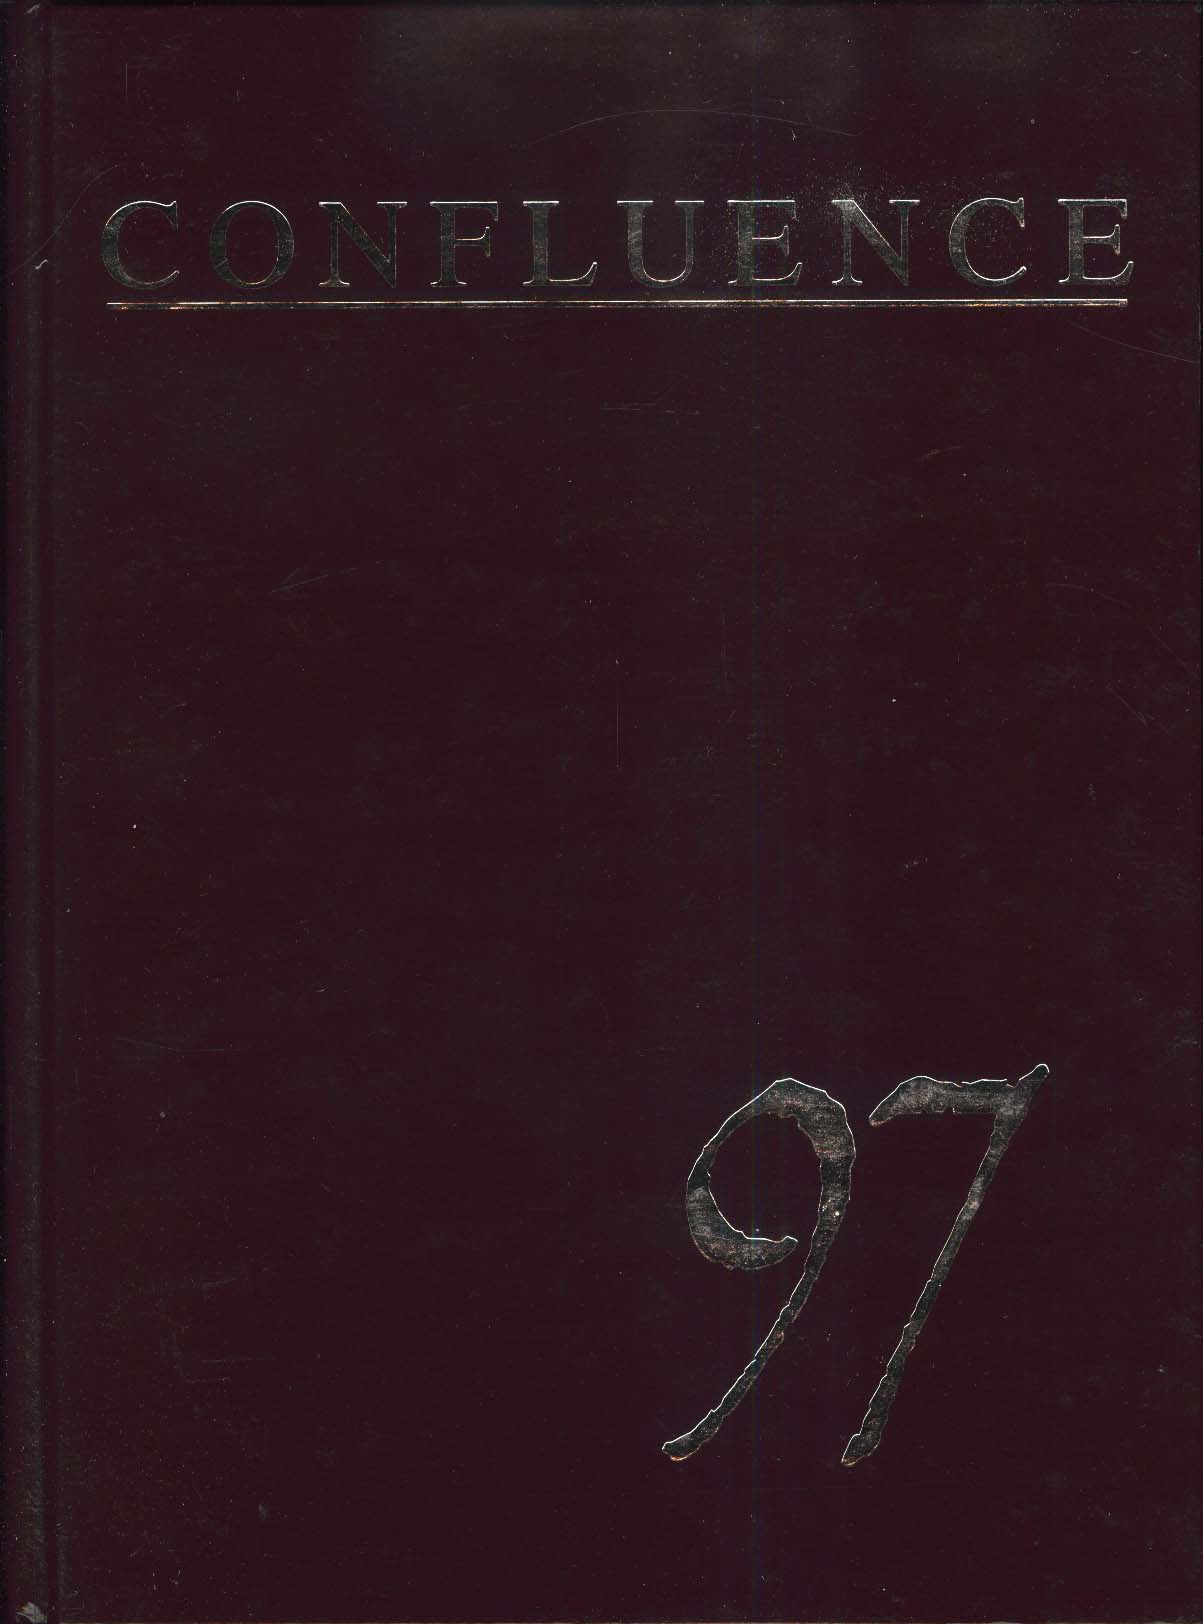 Image for Loomis Chaffee School Confluence 1997 Yearbook